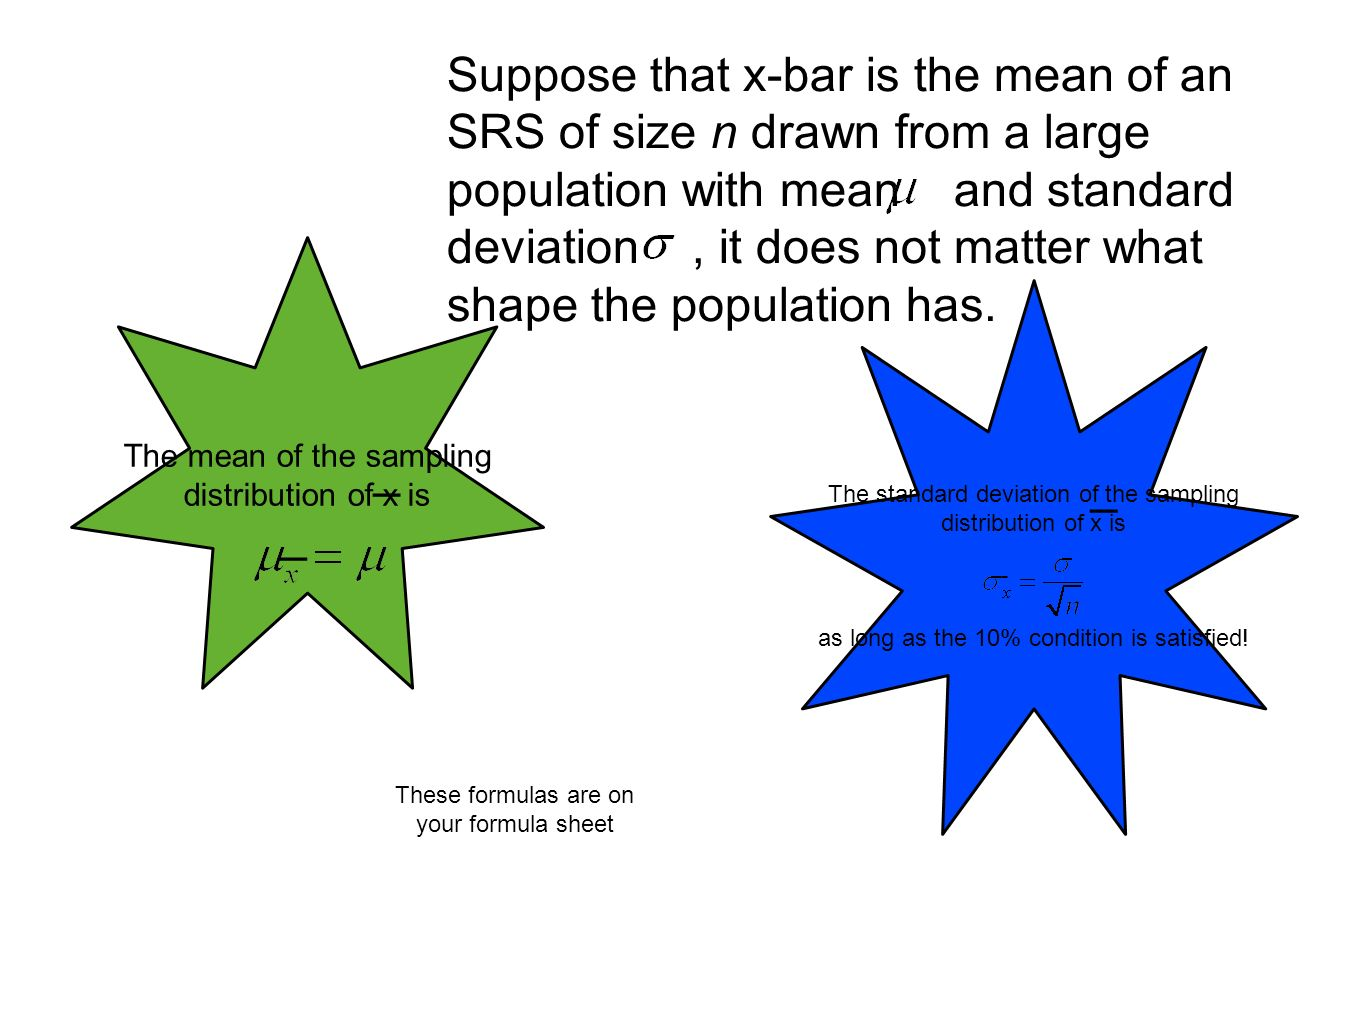 35 Suppose That Xbar Is The Mean Of An Srs Of Size N Drawn From A